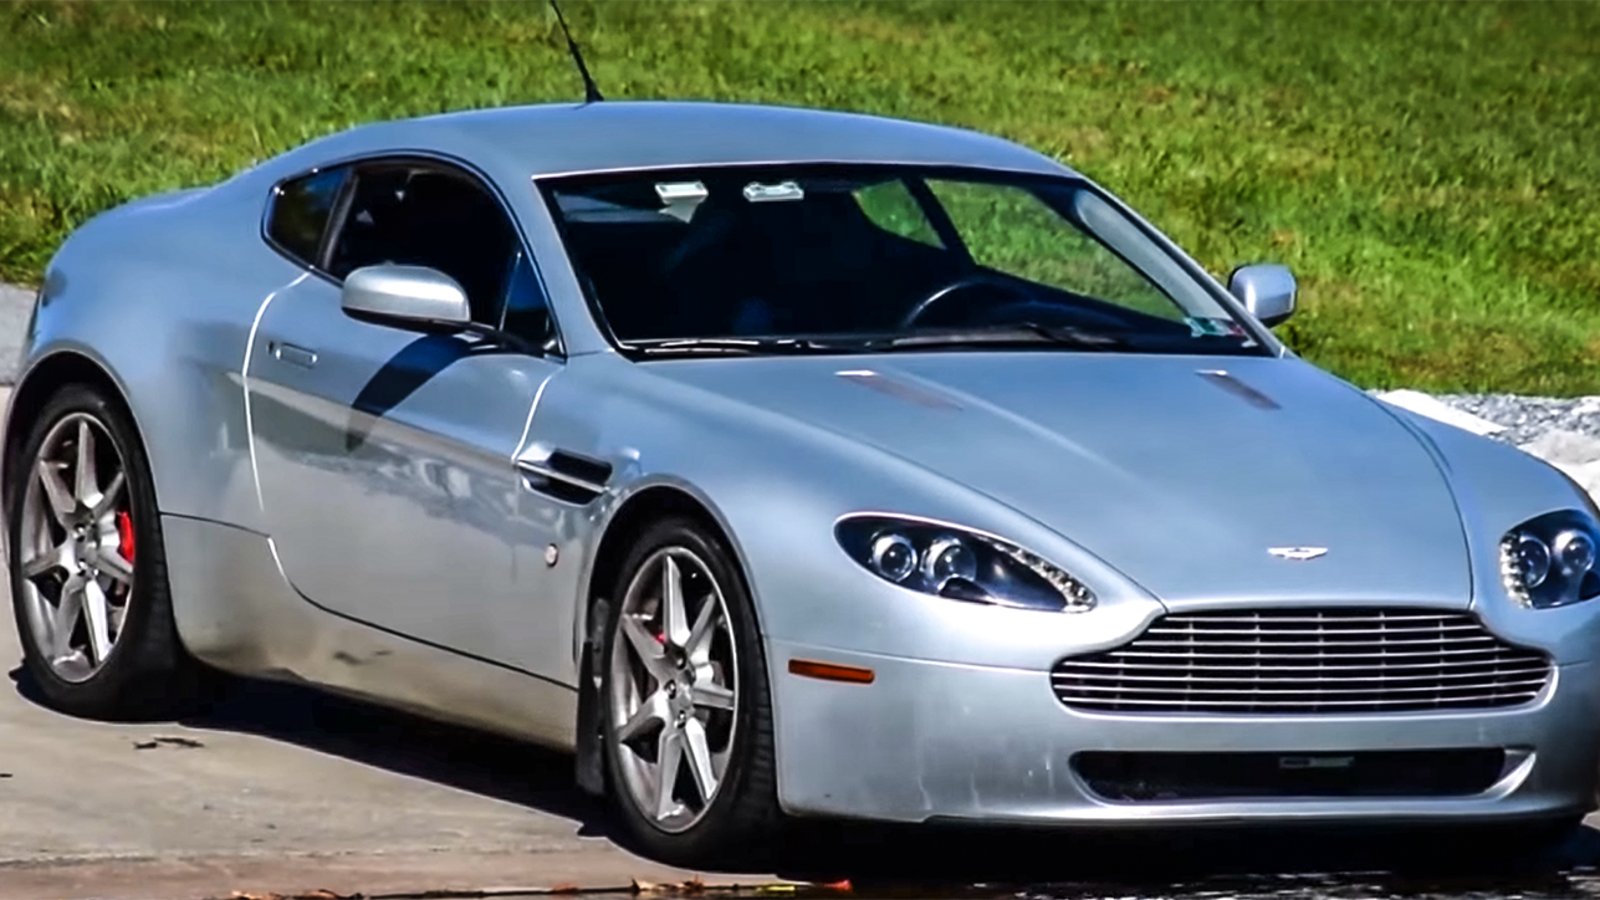 The Aston Martin V8 Vantage Is The Best Used Exotic Car Value In